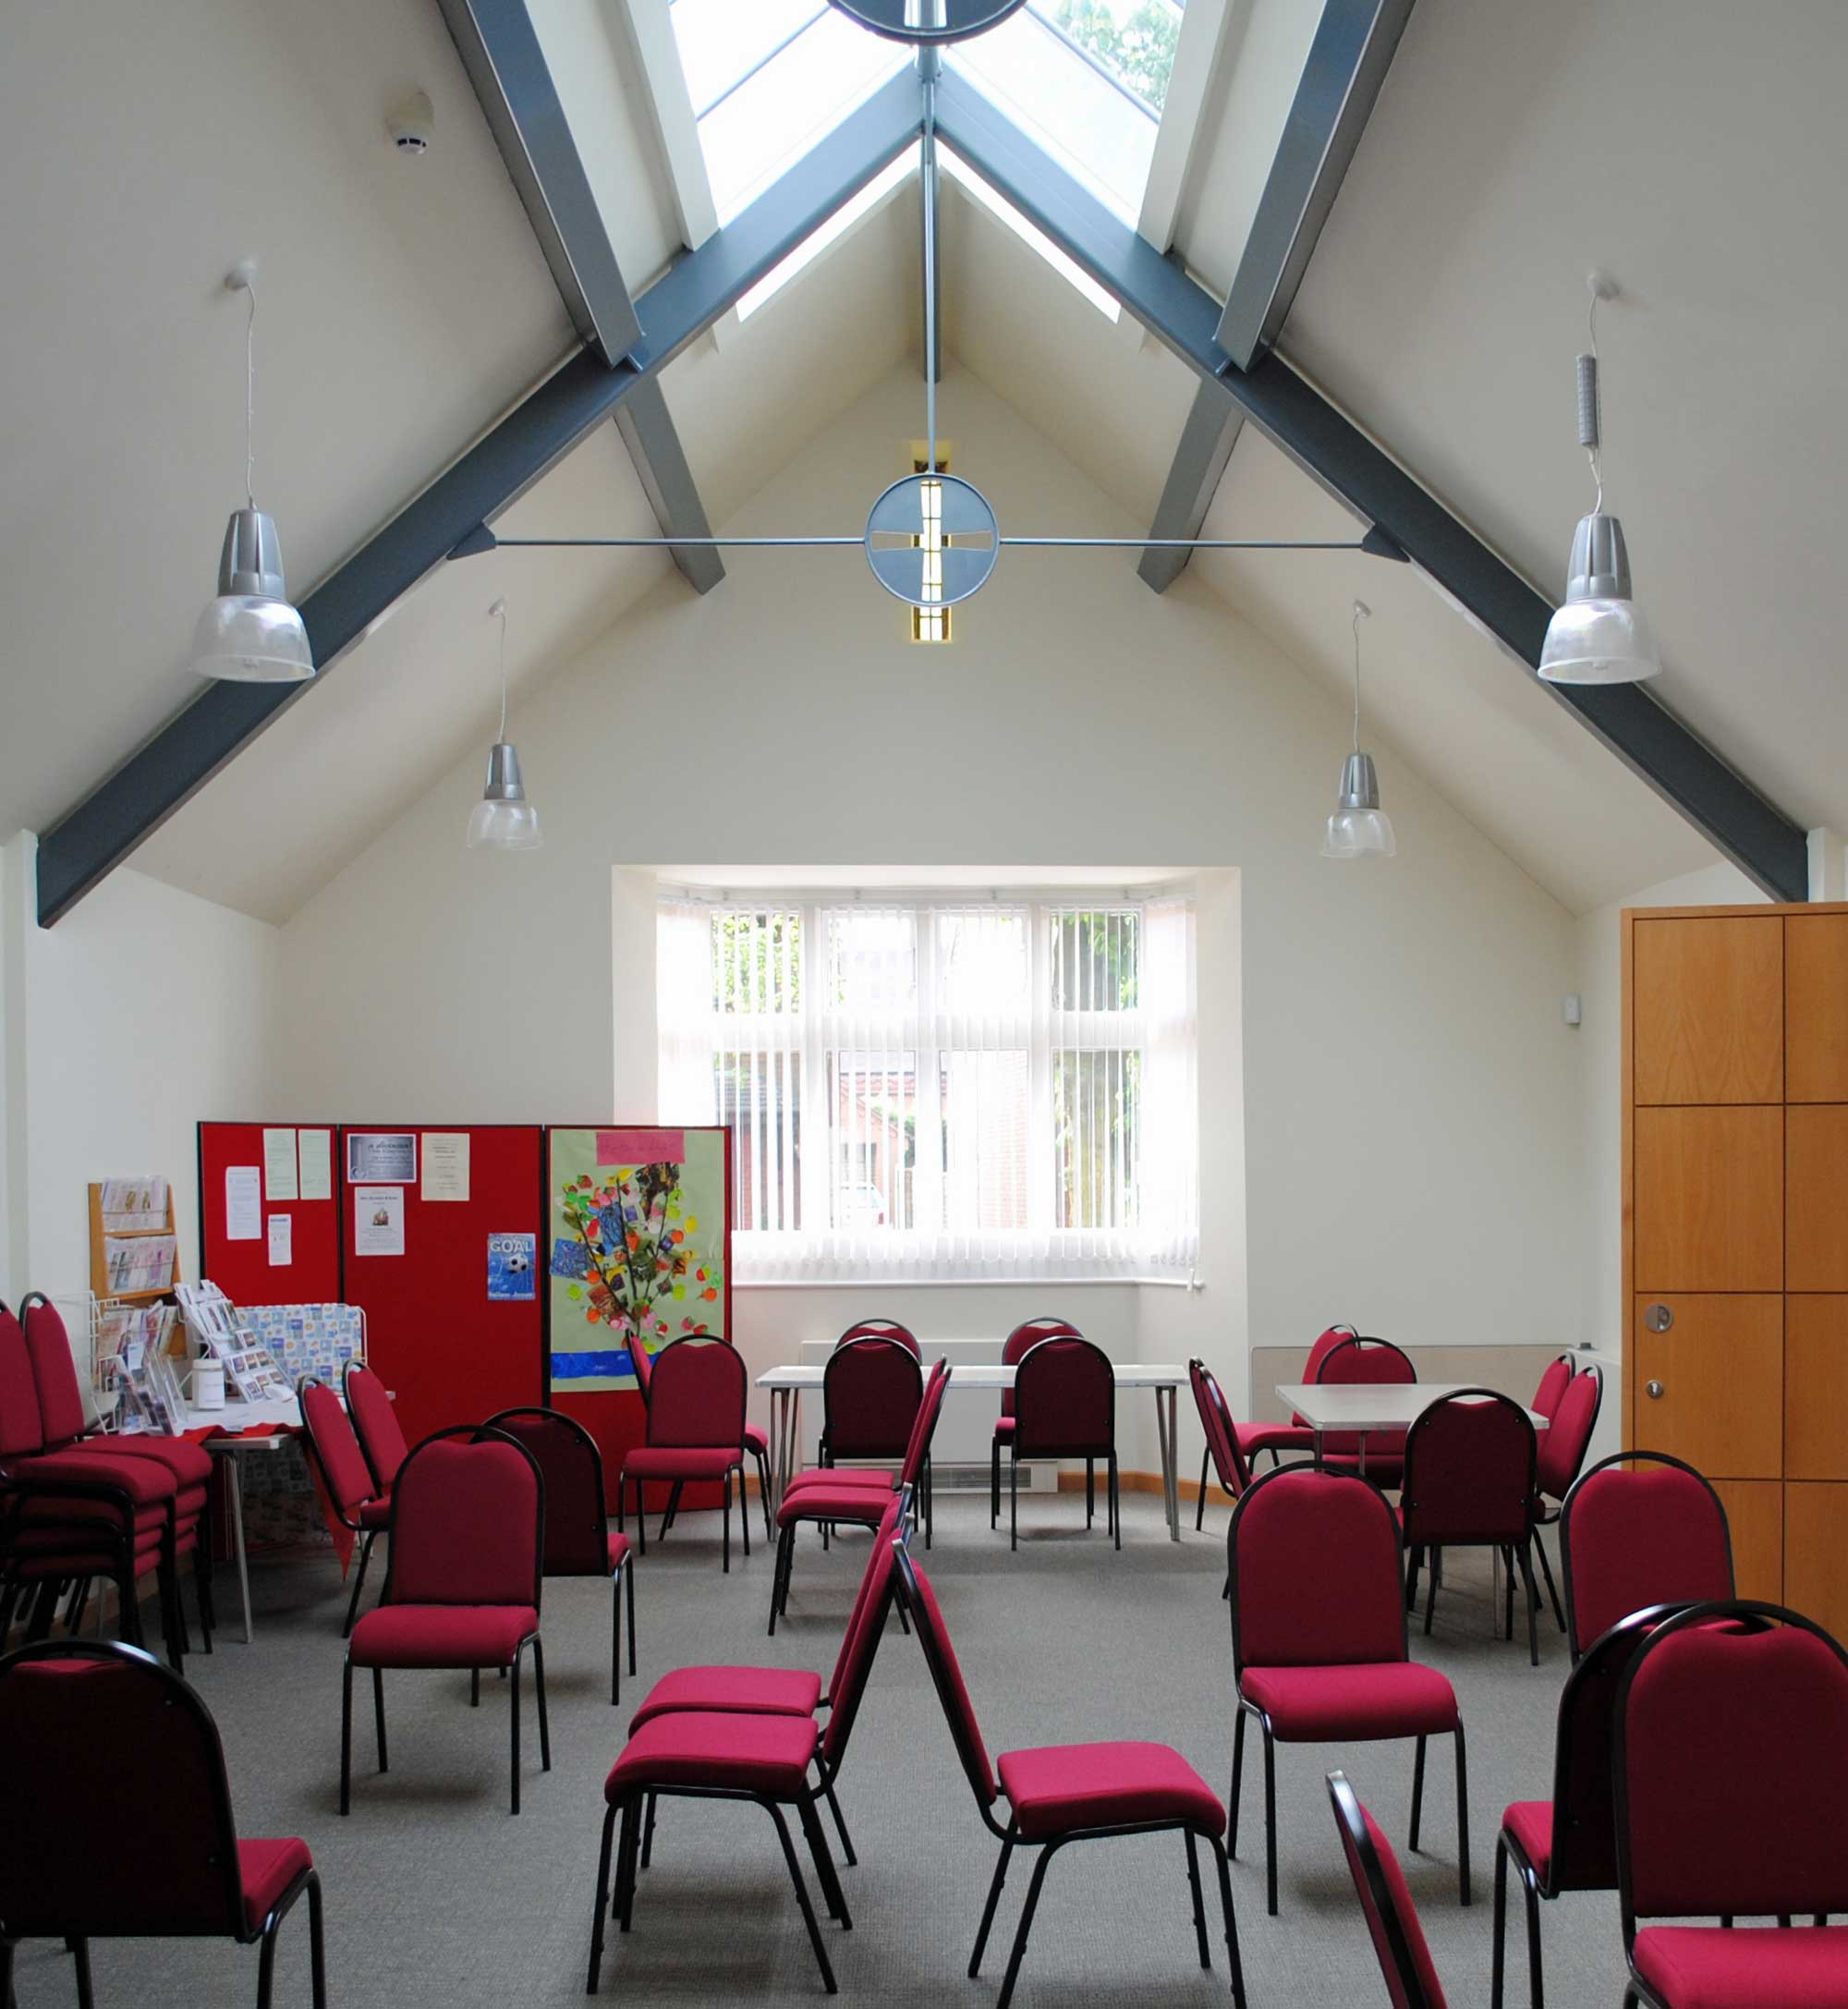 Methodist church meeting room vaulted ceiling steel work